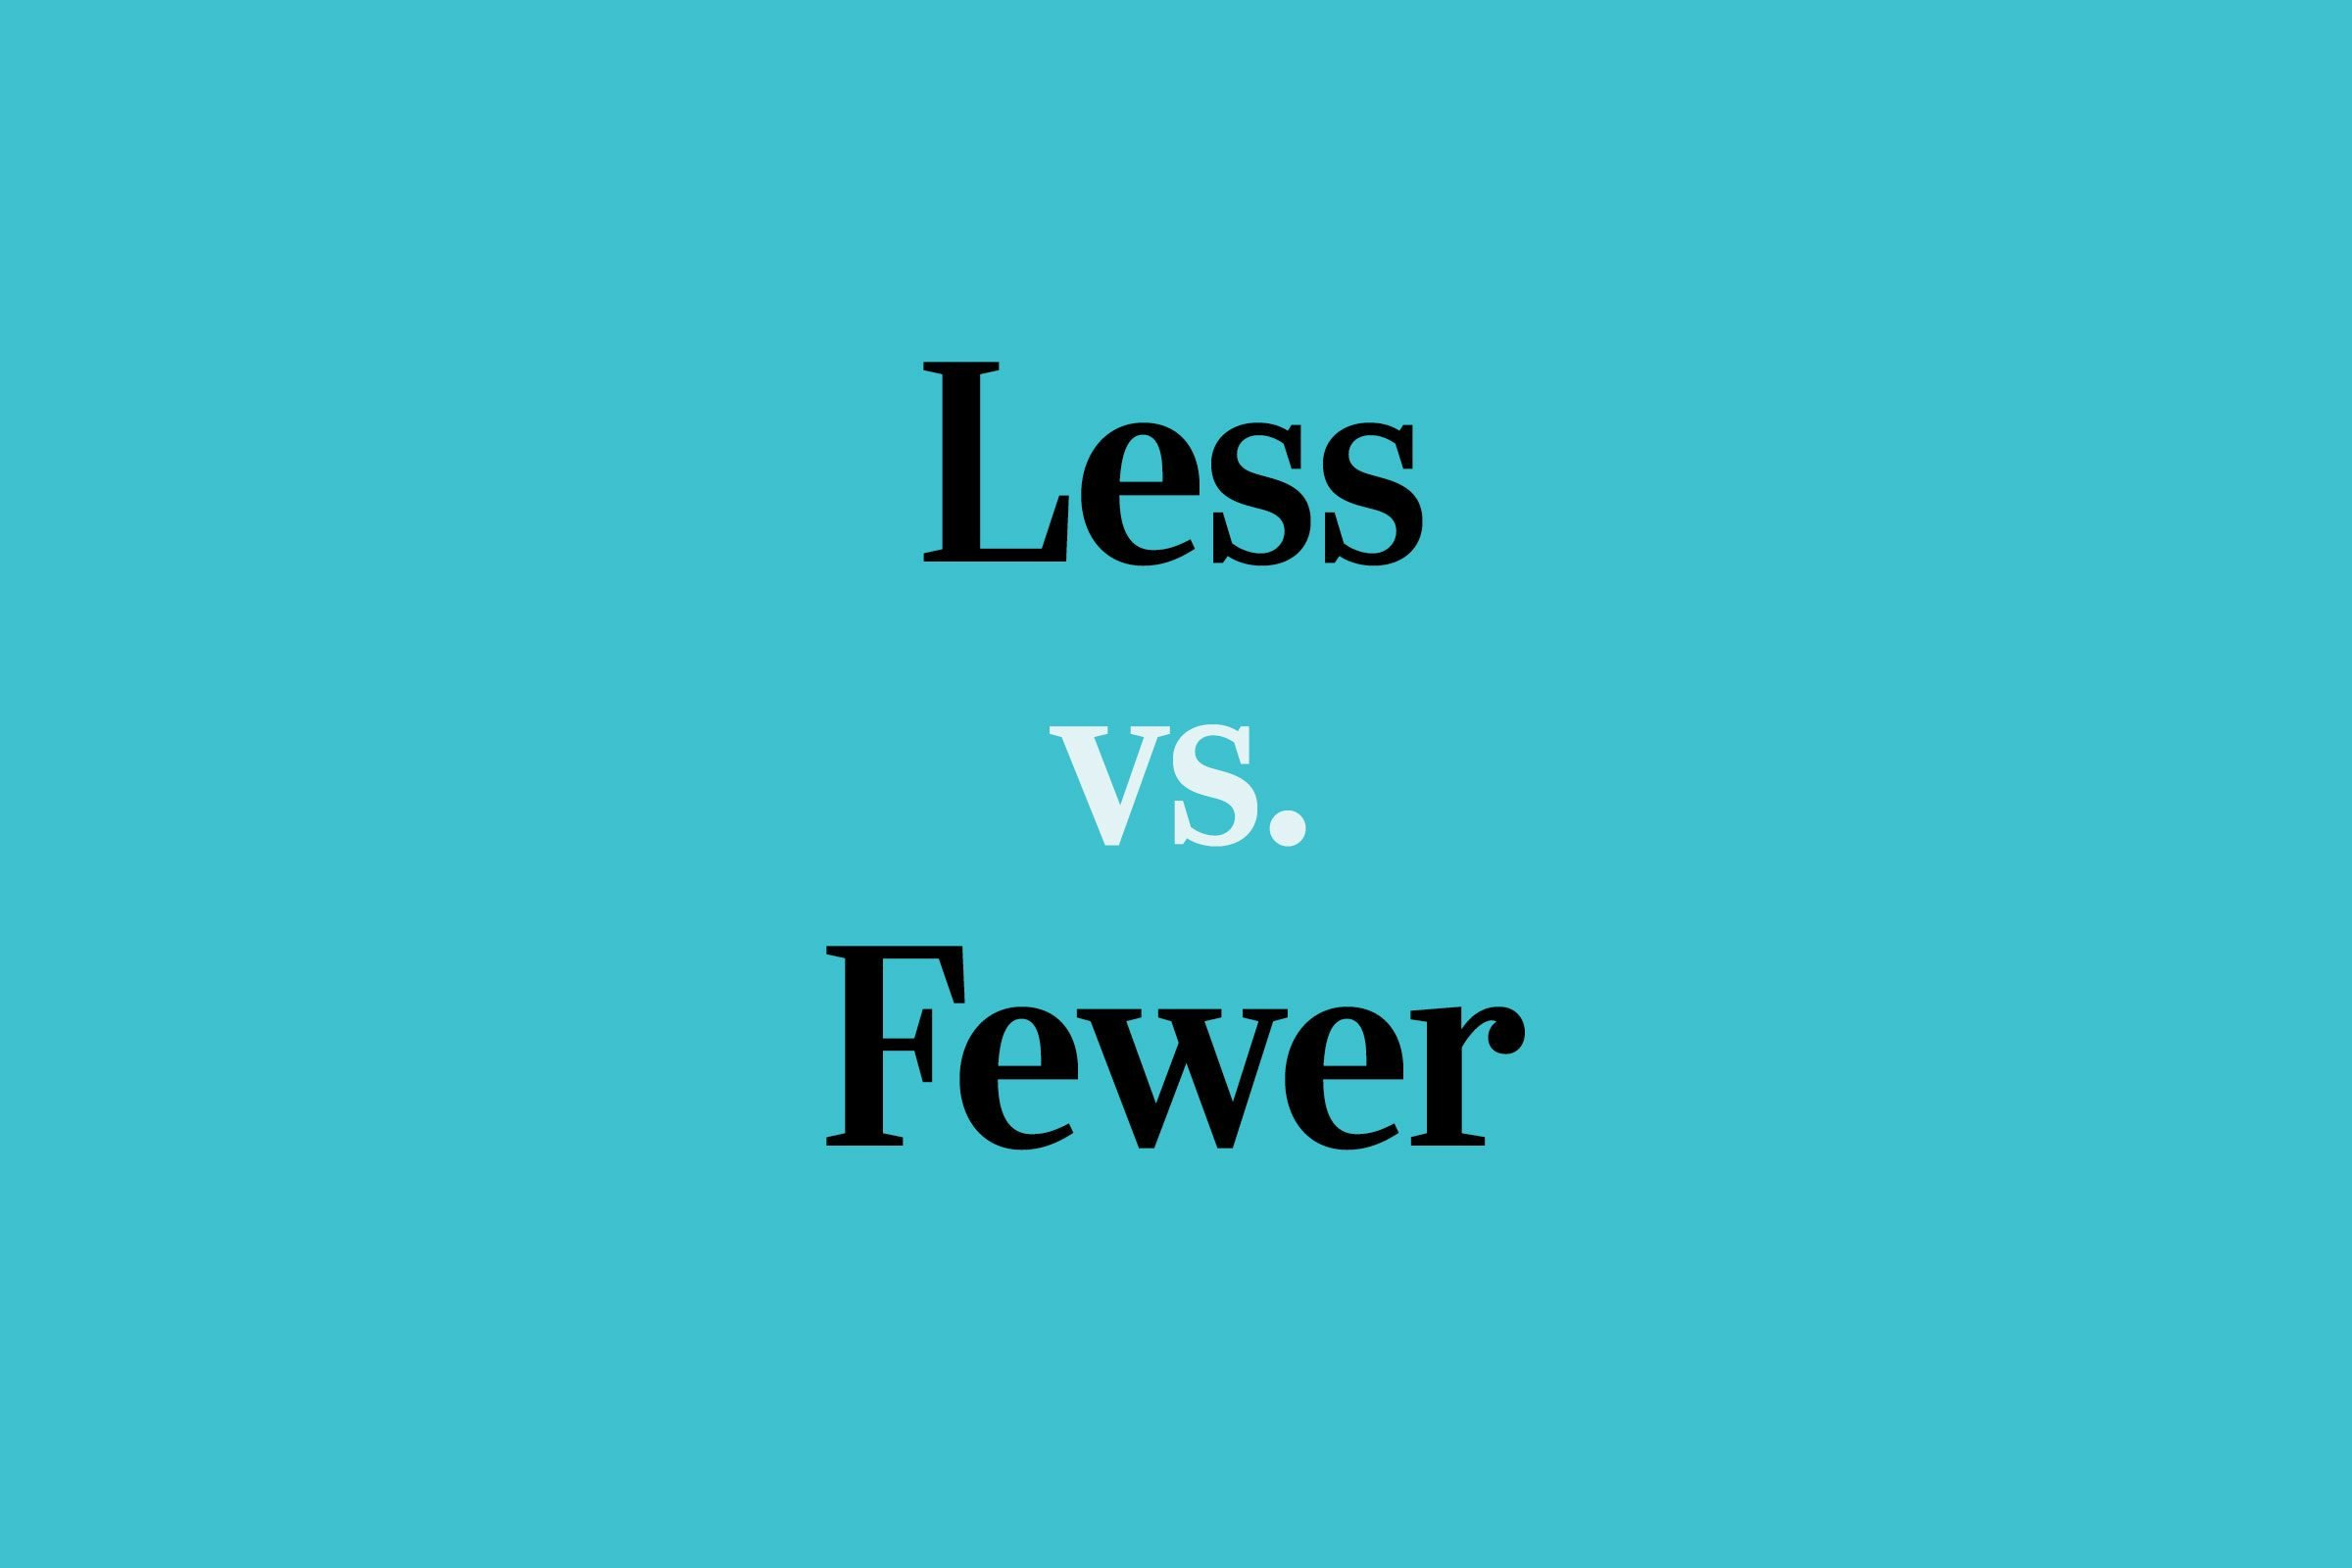 When To Correctly Use Less Versus Fewer